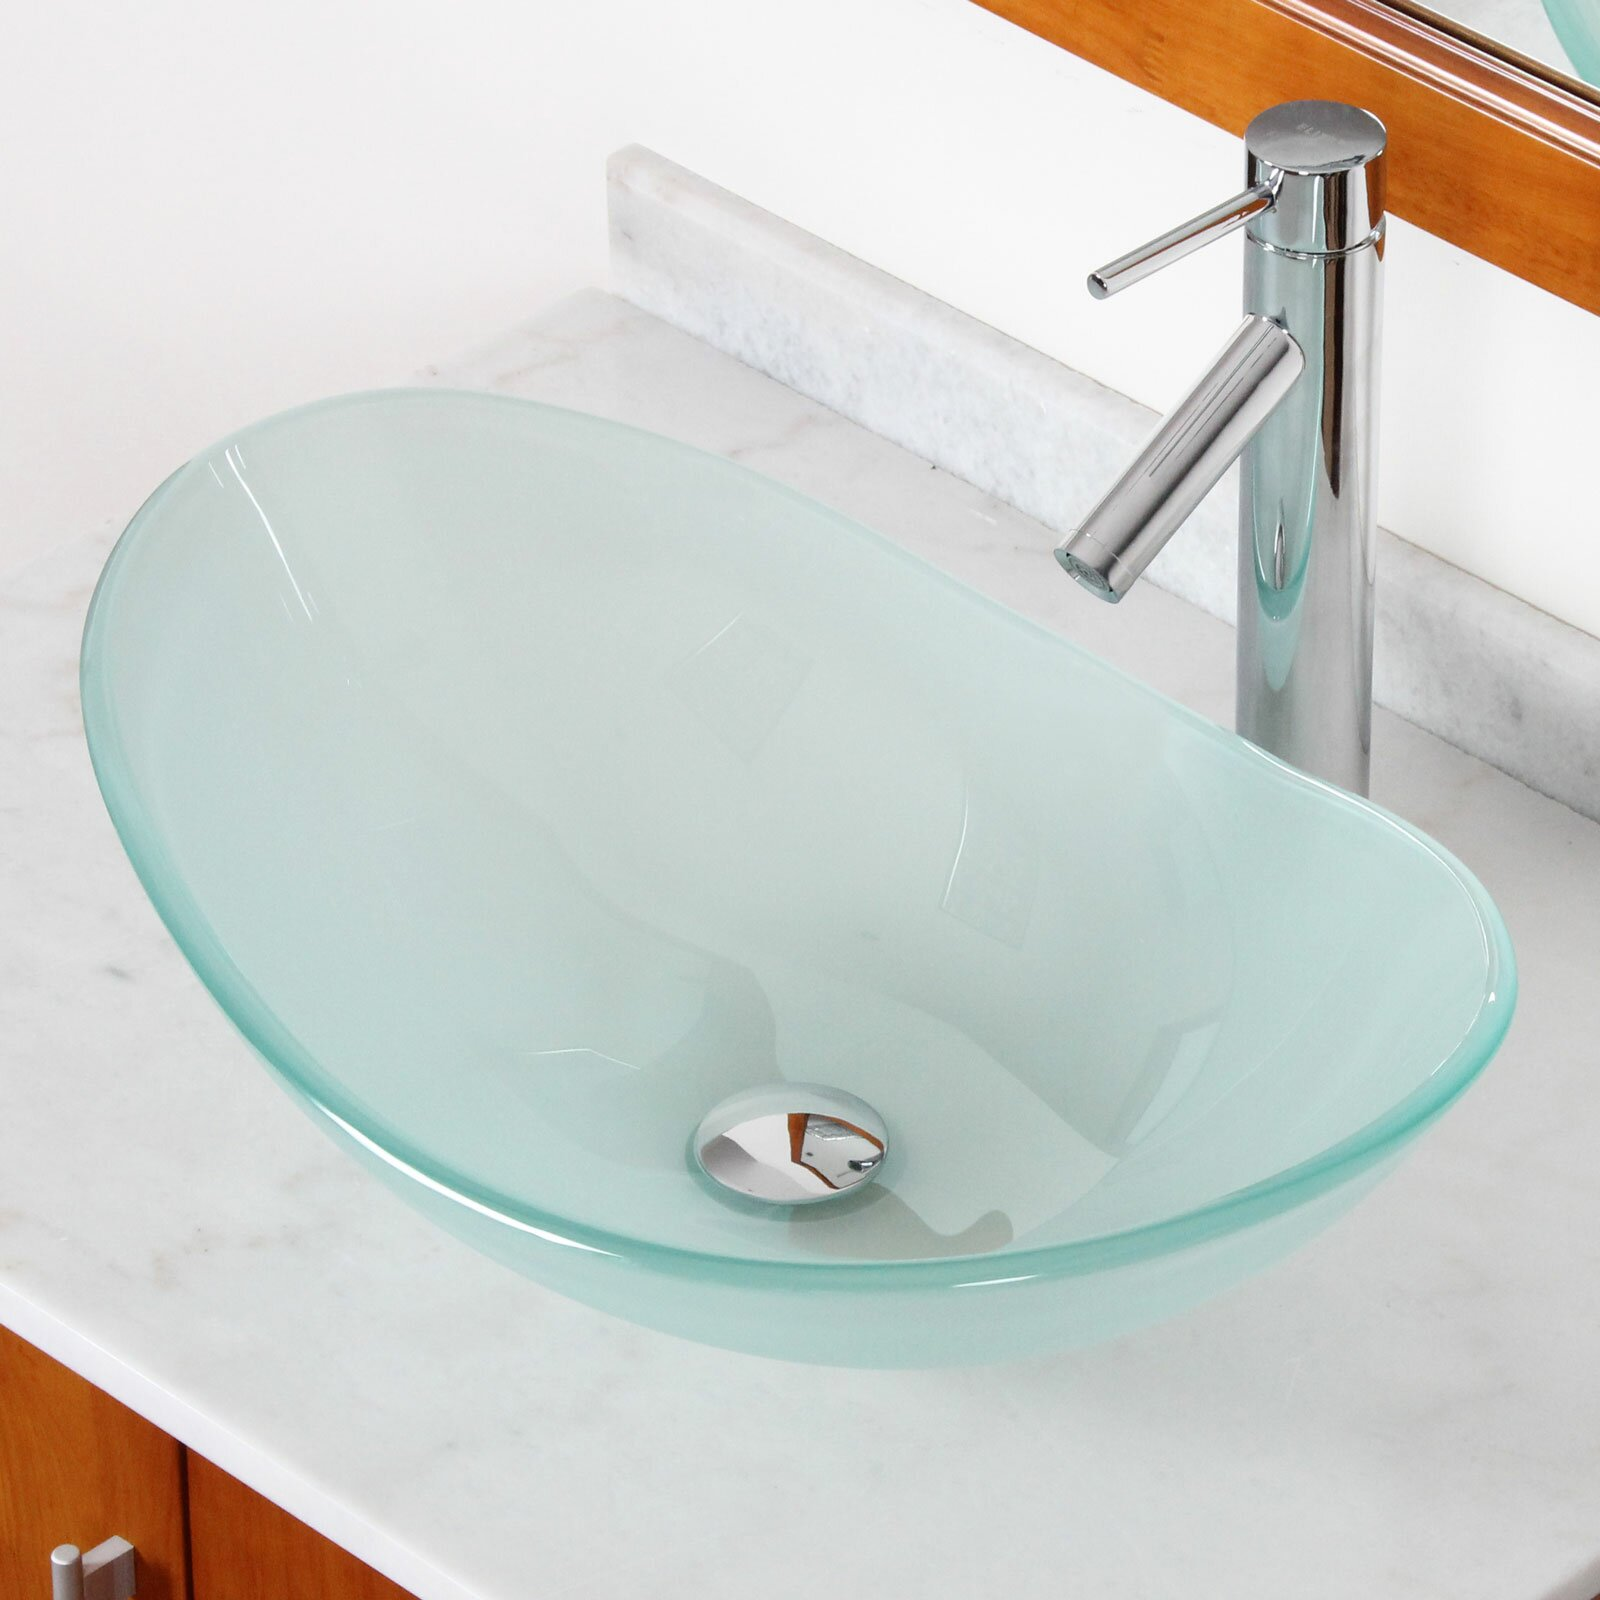 Decorative Bathroom Sinks Bowl Bathroom Sink Mirrored Bathroom Vanity Bathroom Sinks At